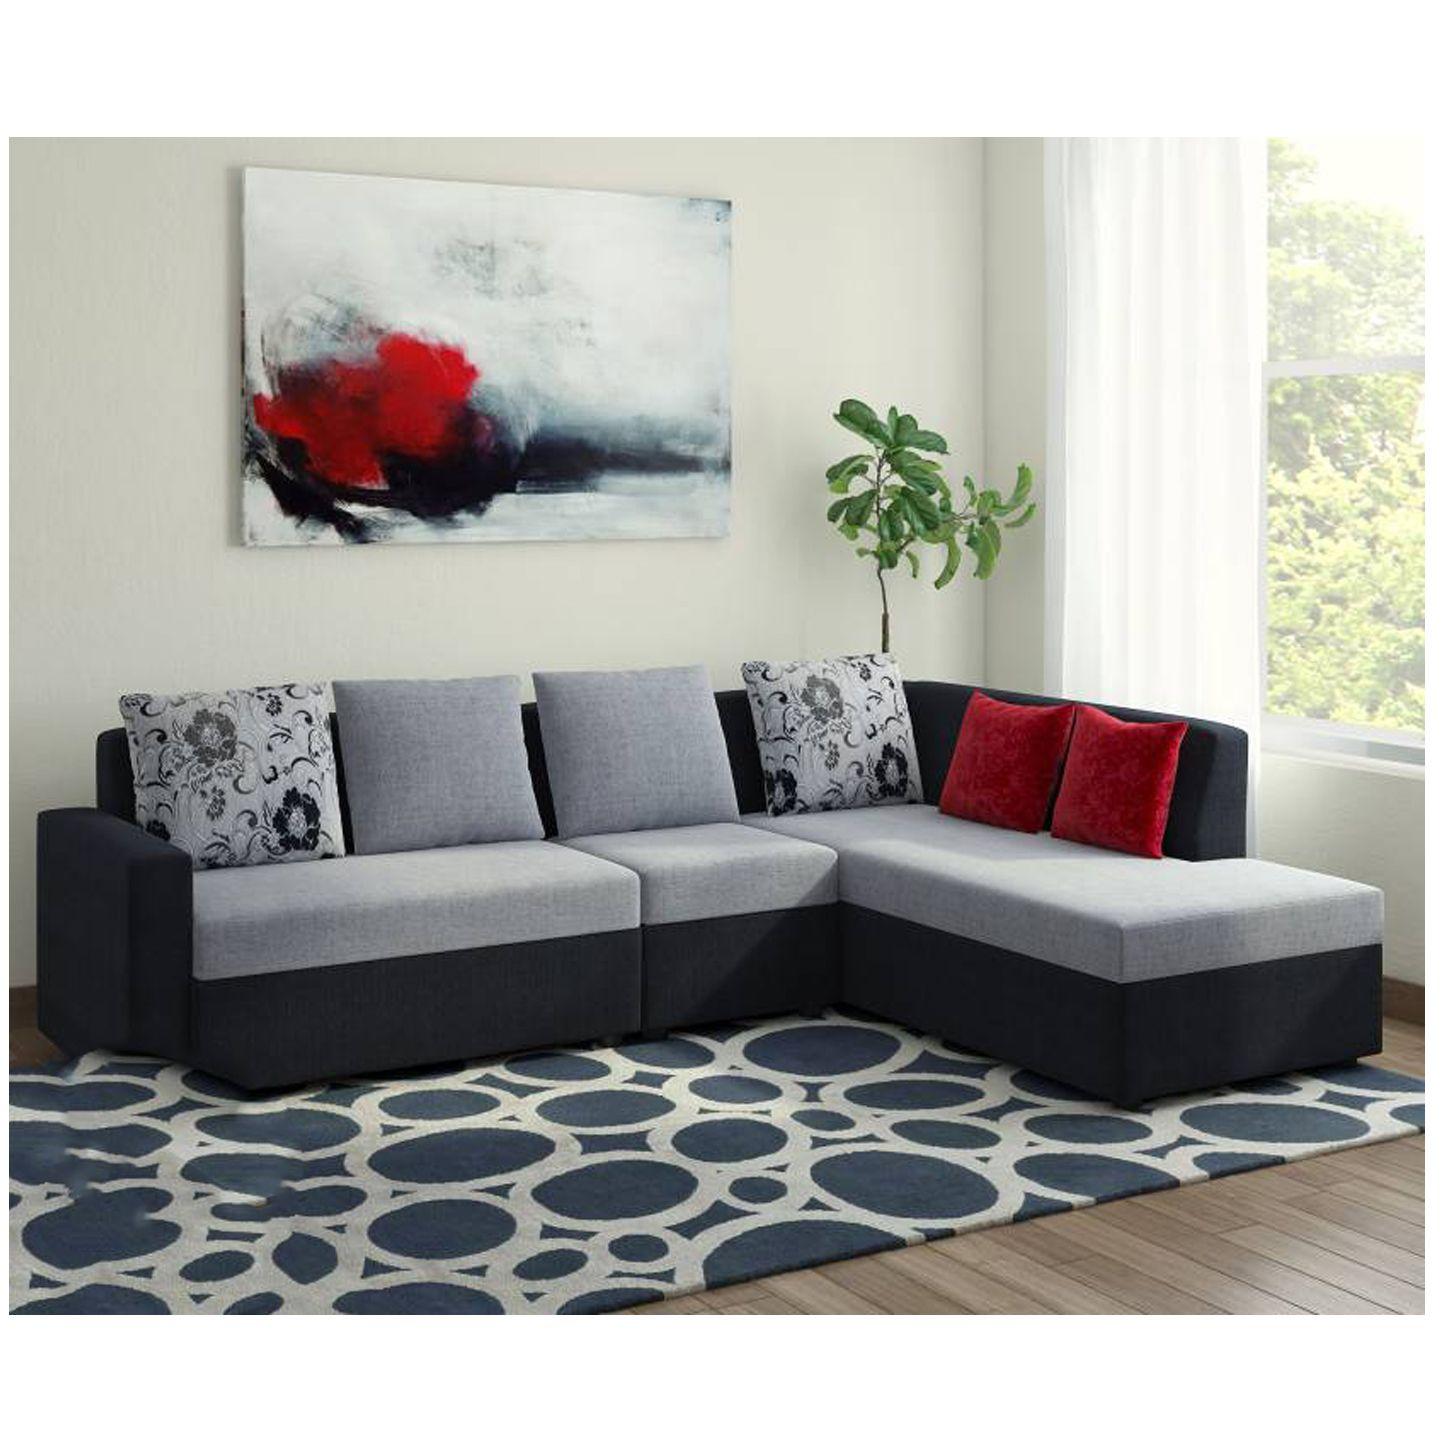 Leather Corner Sofa Tapiceria